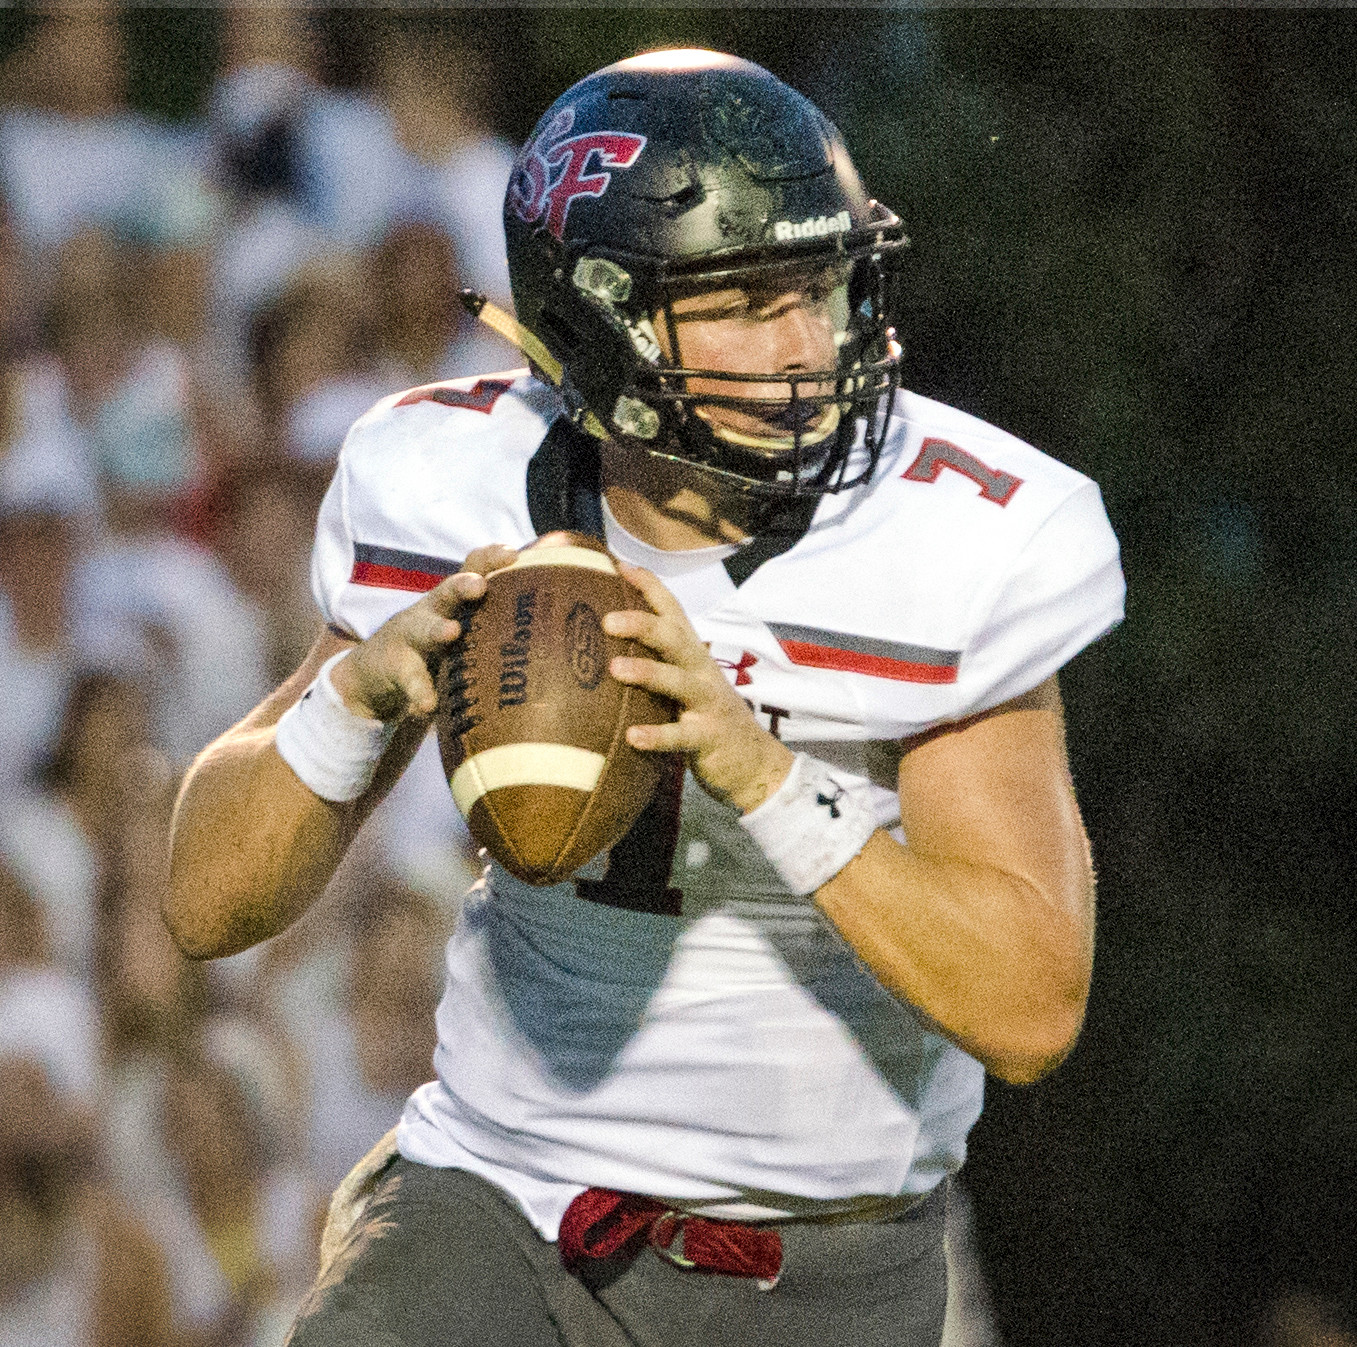 Jack Samsel led the Toros' offense with six touchdowns: Five passing and one rushing against Lanier.